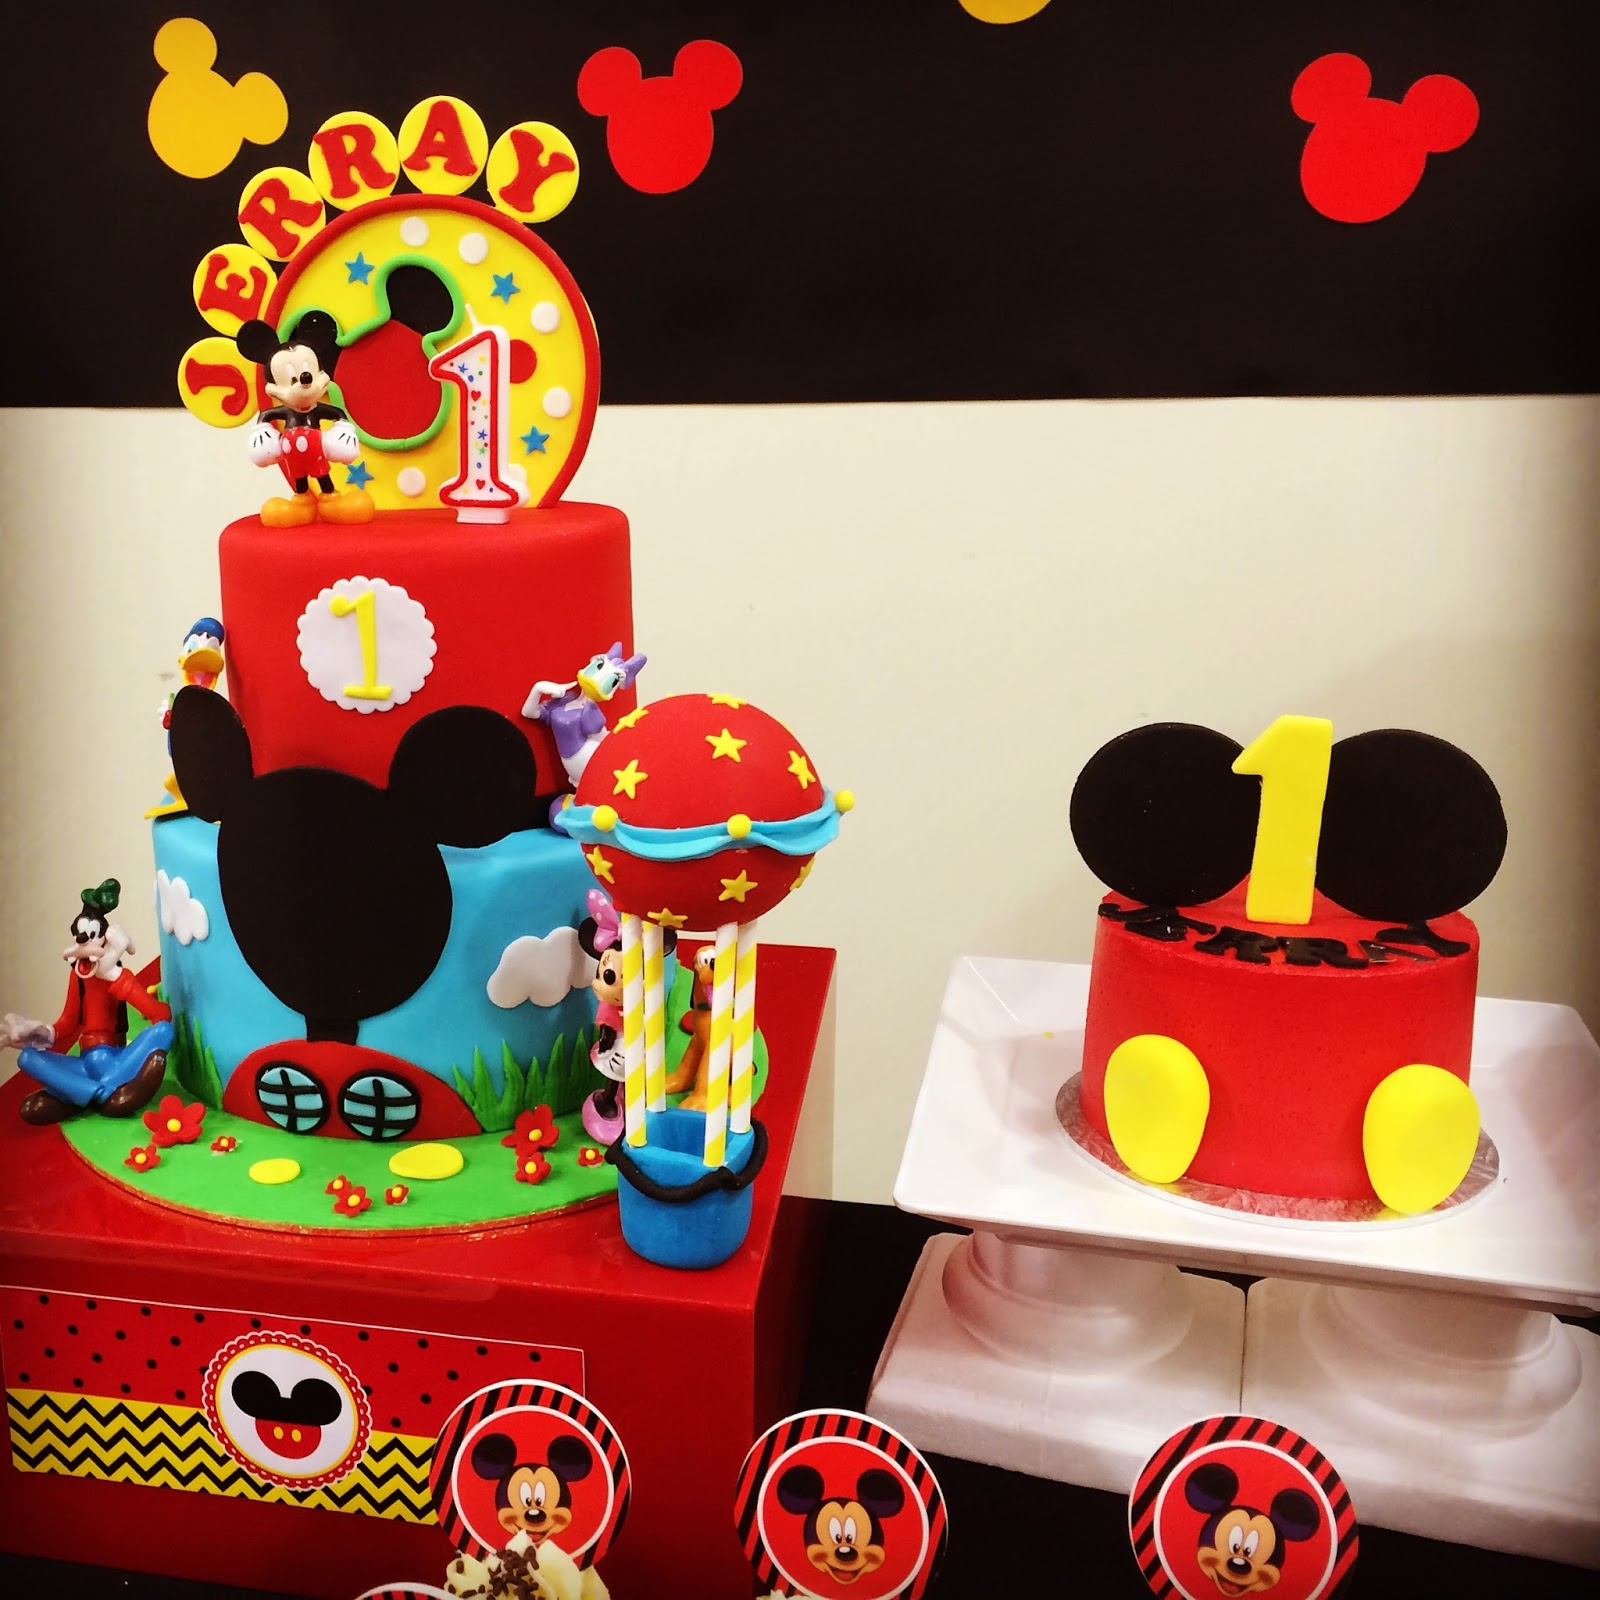 Mickey Mouse Smash Cake: Mickey Mouse Cookies, Cupcakes, Macarons & Cakes